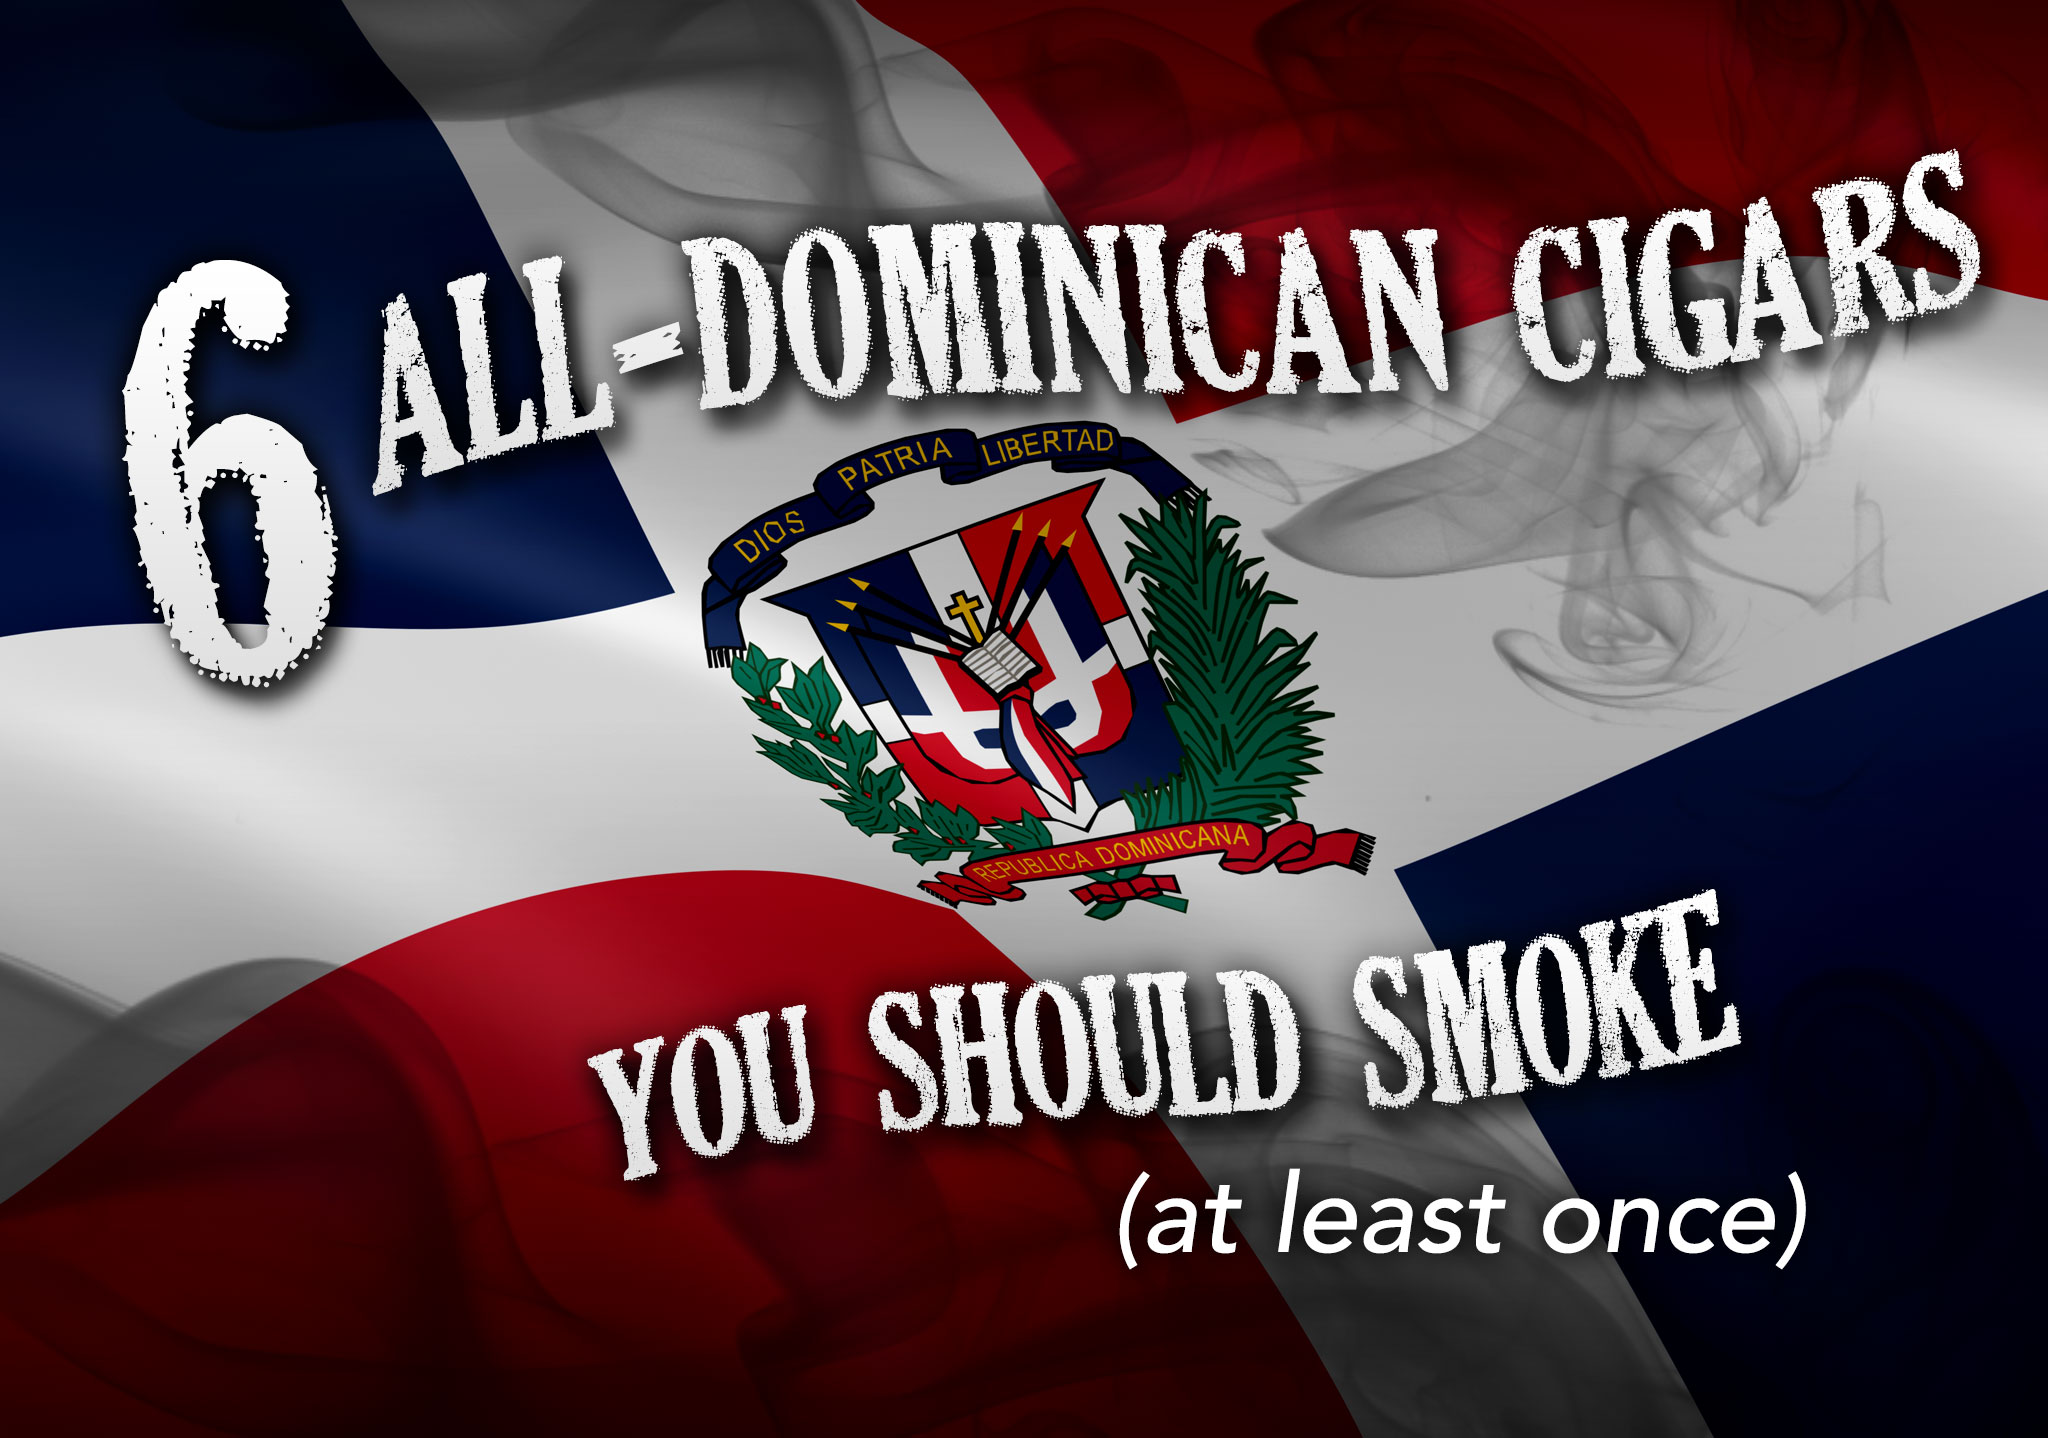 Six All Dominican Cigars You Should Smoke